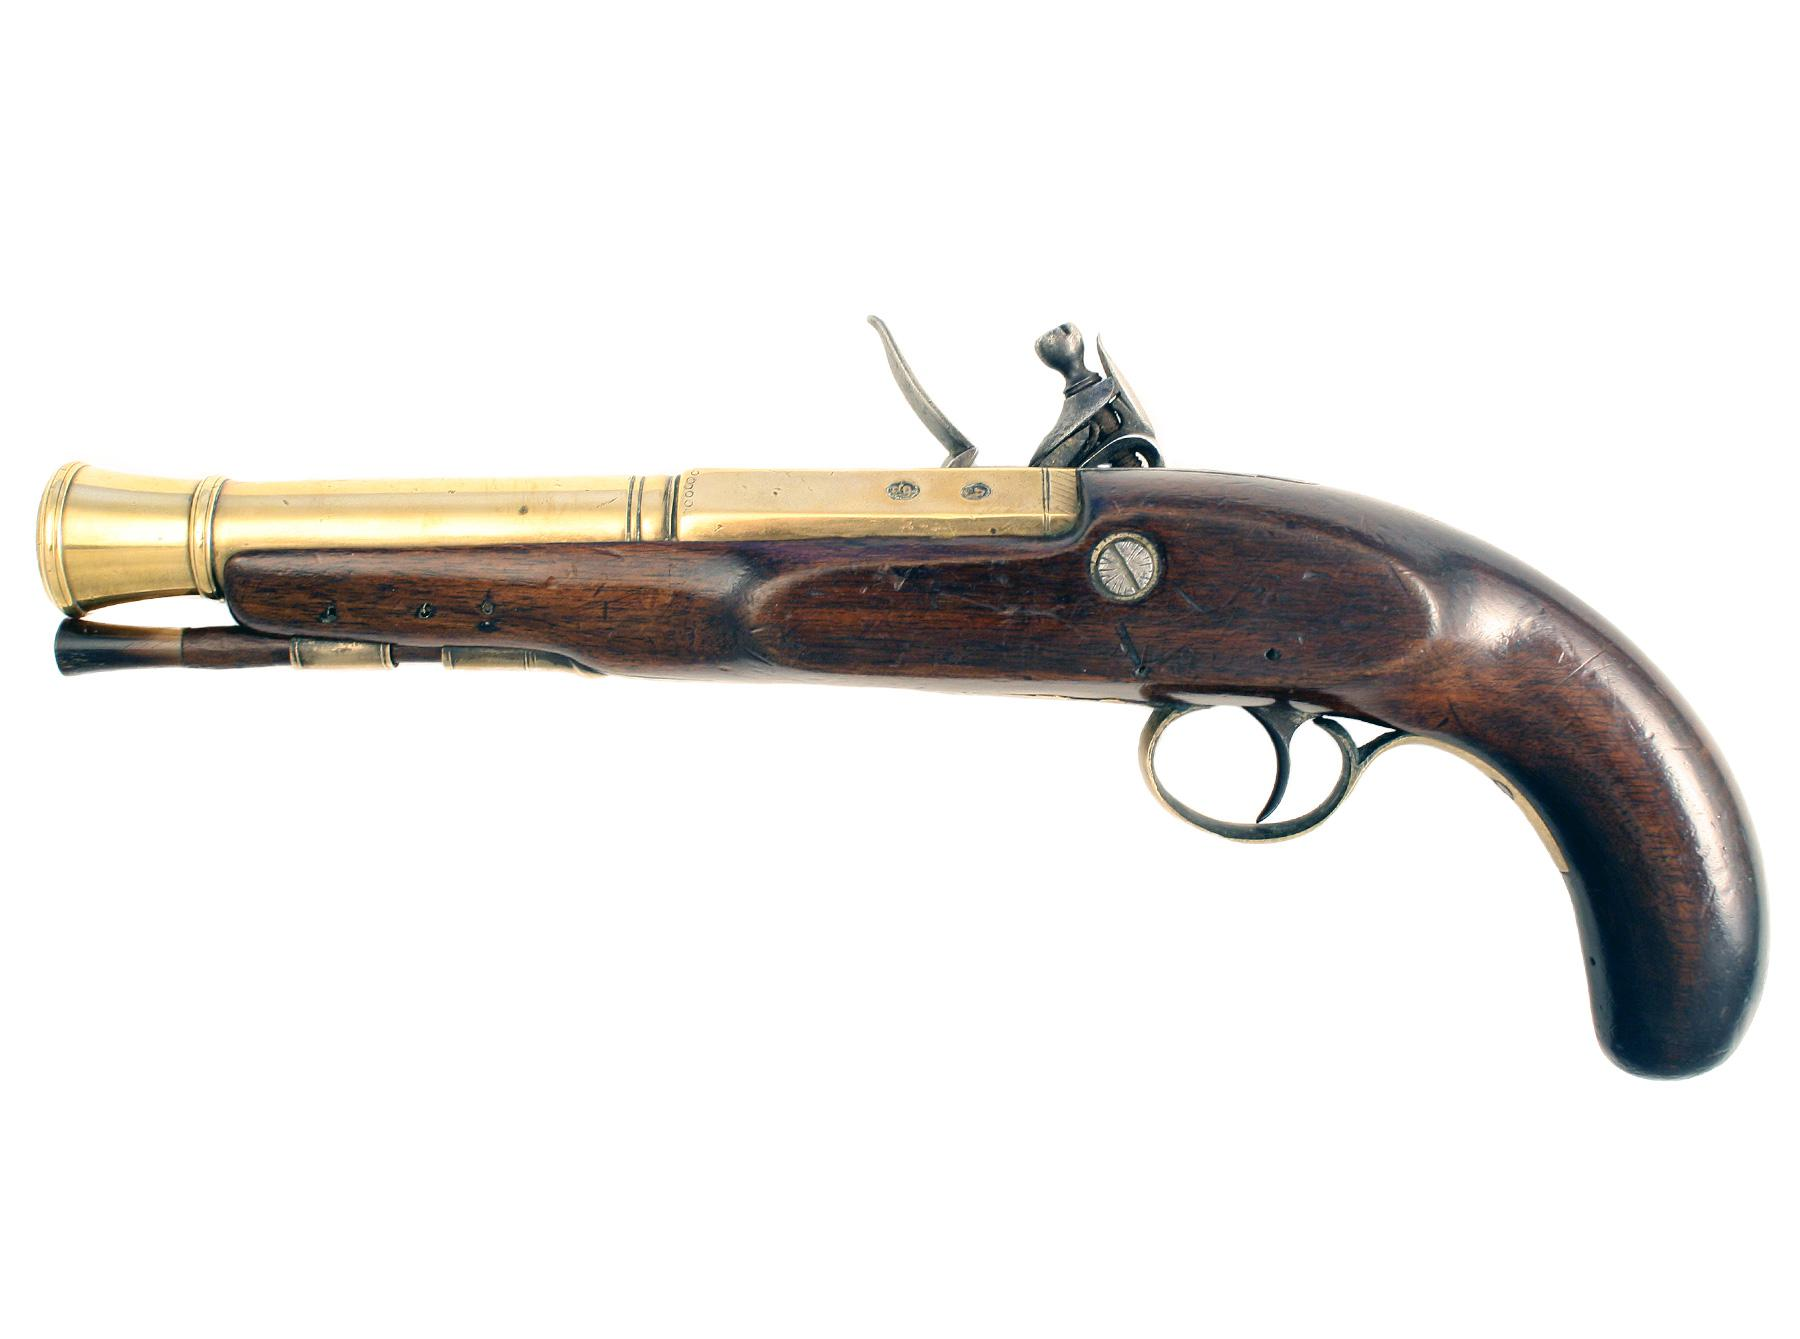 A Flintlock Blunderbuss Pistol by Fisher